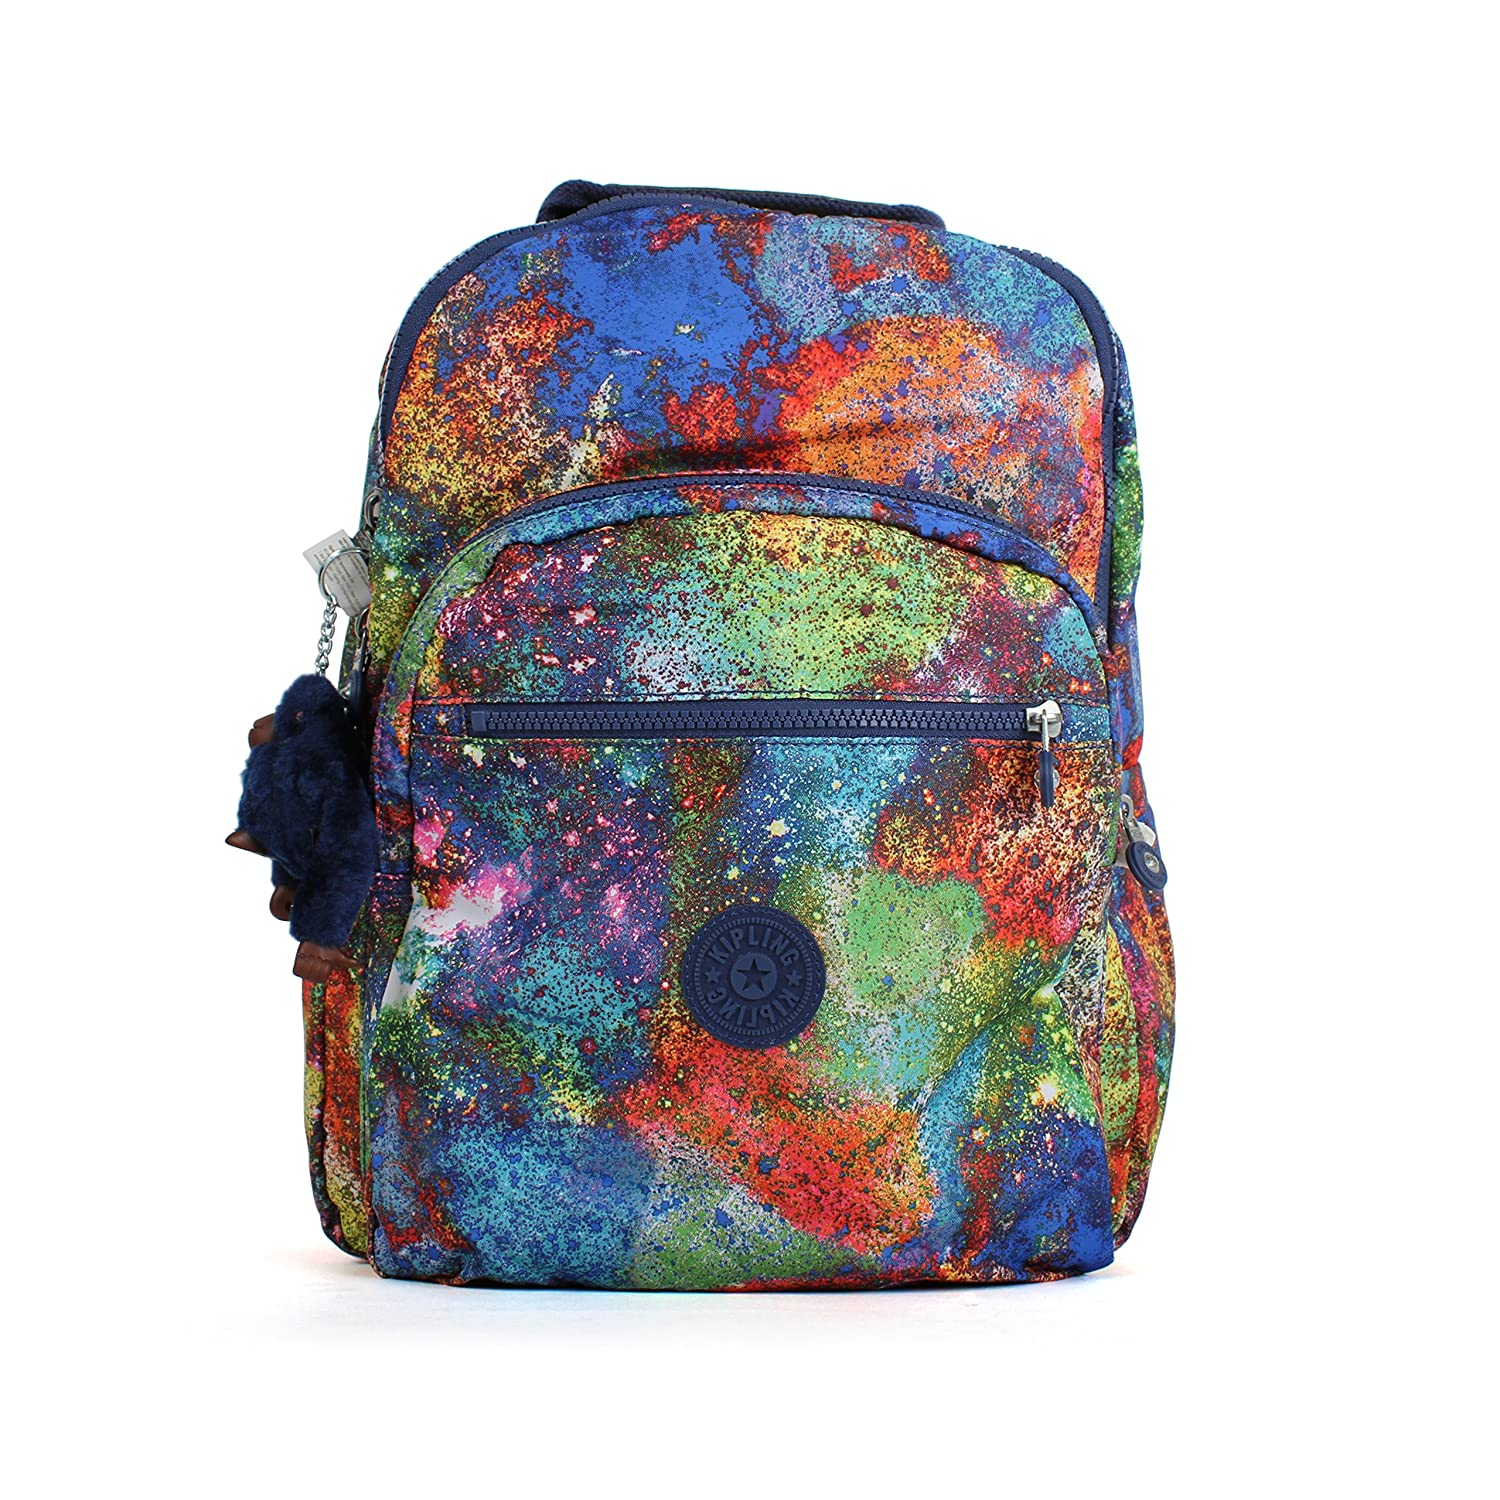 b019e48312 Kipling Seoul Large Print Laptop Backpack, Good Luck Charm - Buy Kipling Seoul  Large Print Laptop Backpack, Good Luck Charm Online at Low Price in India  ...